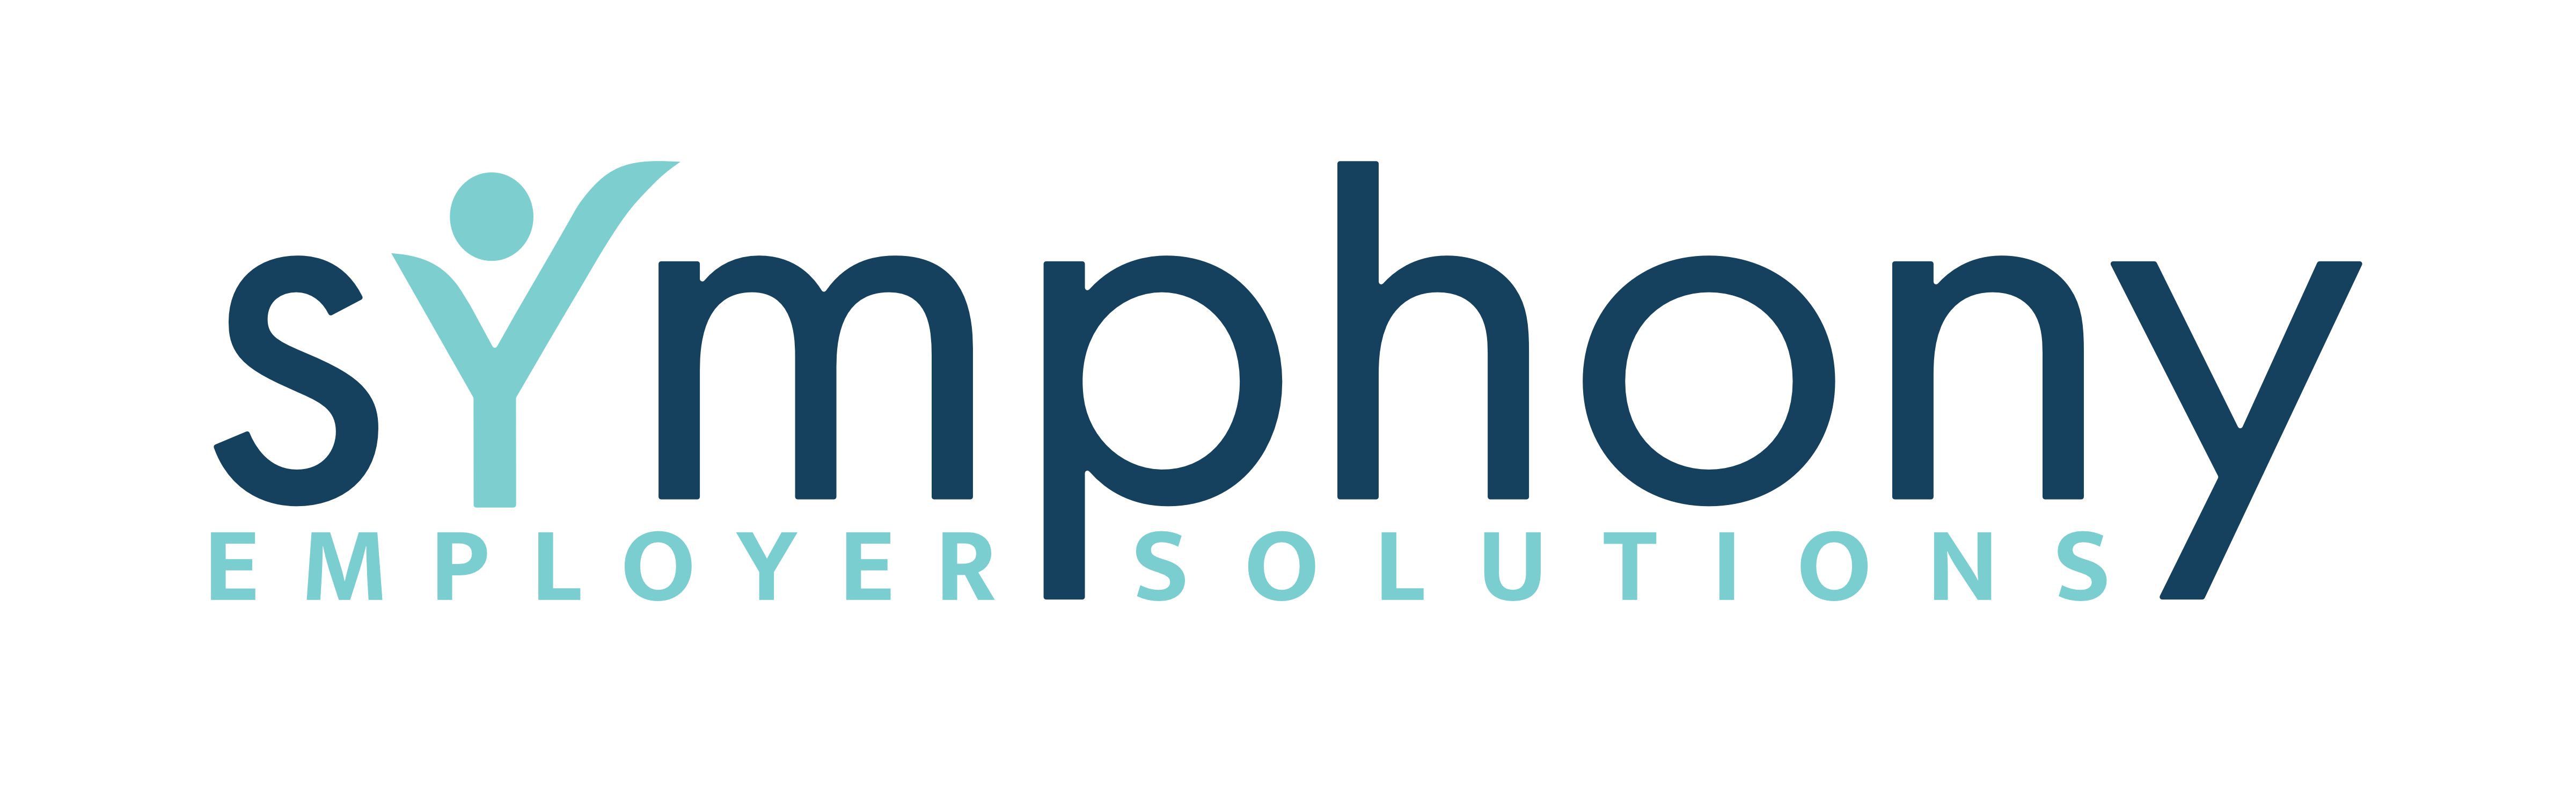 Symphony Employer Solutions ~ Integrated Workforce Management Technology